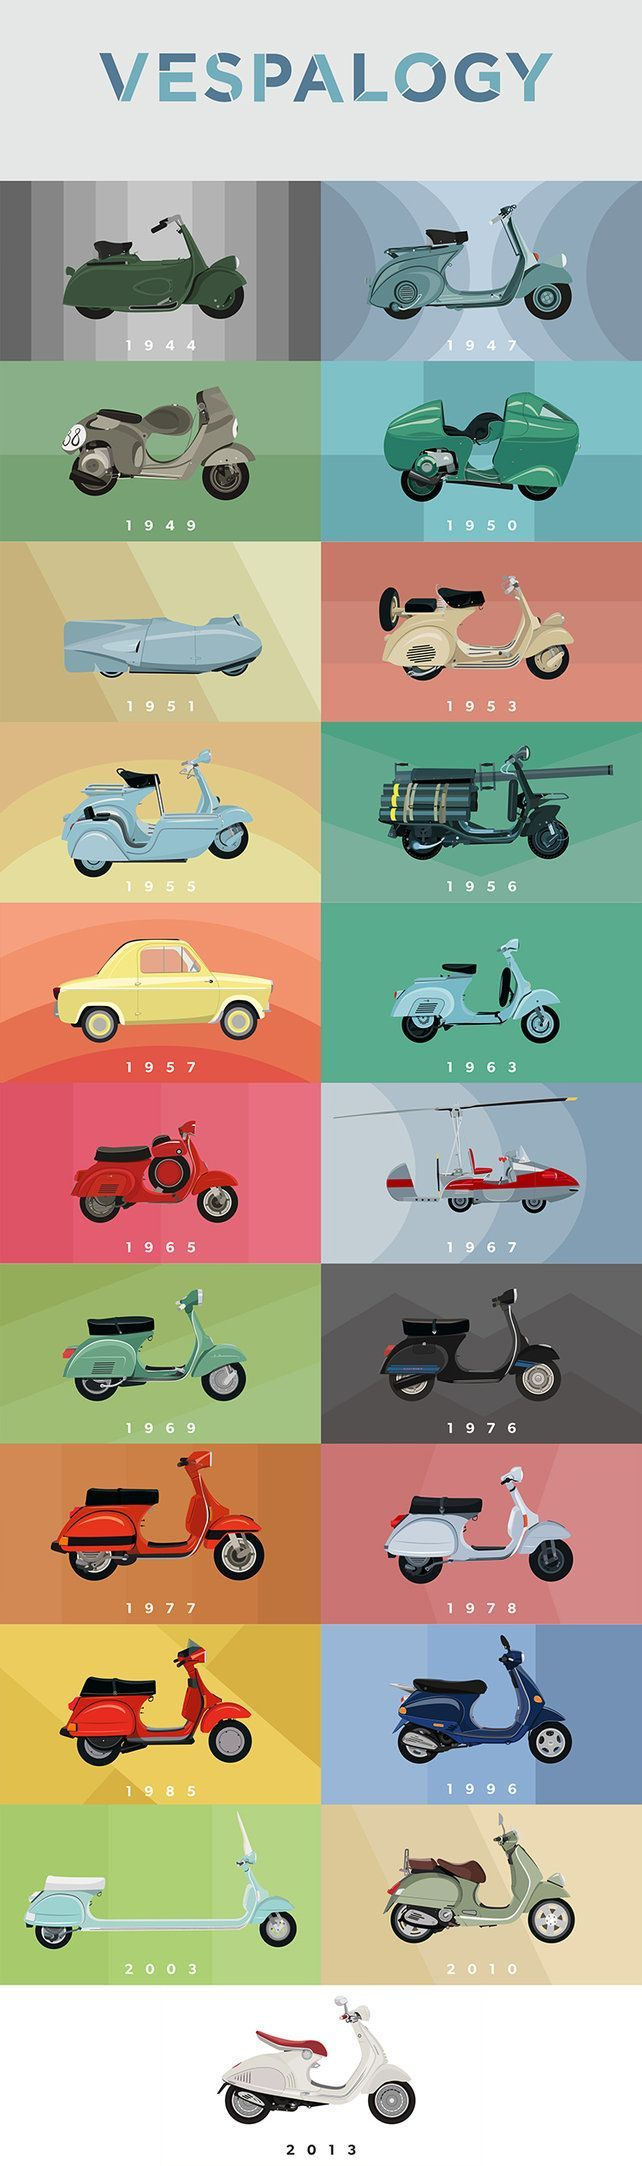 If youre going to , do it in style! has mastered style over the years, as this fun infographic demonstrates. This month weve got amazing sales on our scooters, so come in and see us.